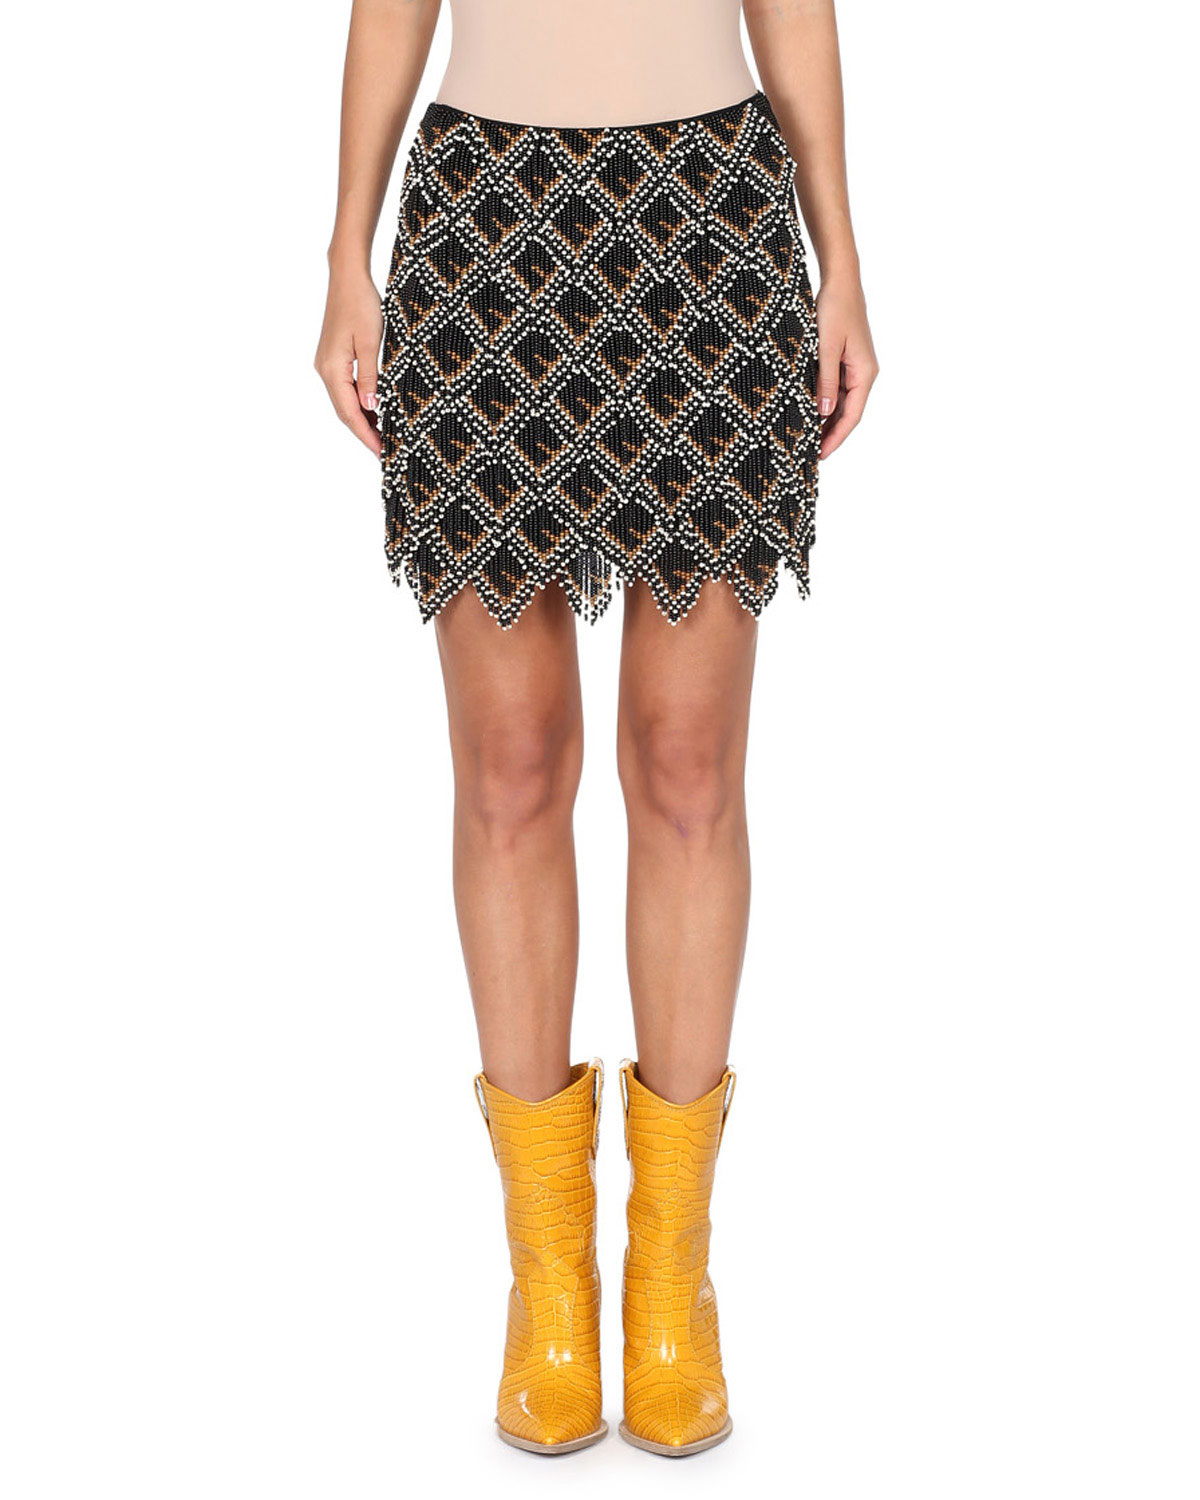 FENDI BEADED MINI SKIRT W/ LEATHER LOGO BACK